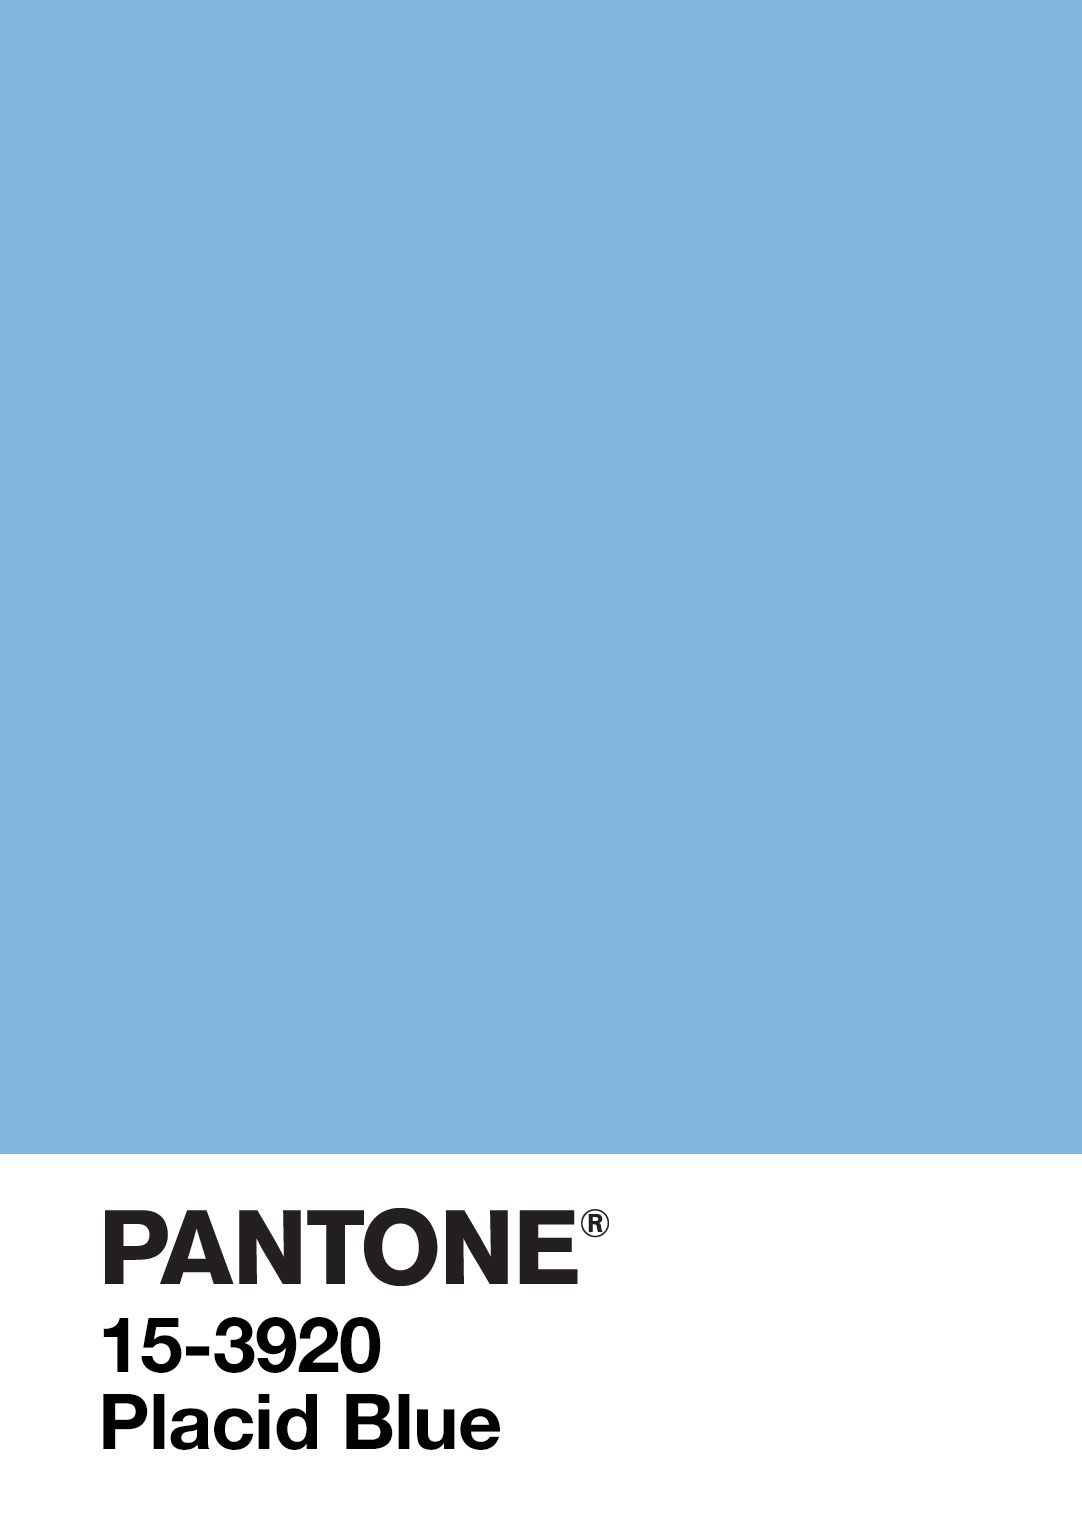 Pantone Placid Blue Compare With Cornflower And Serenity